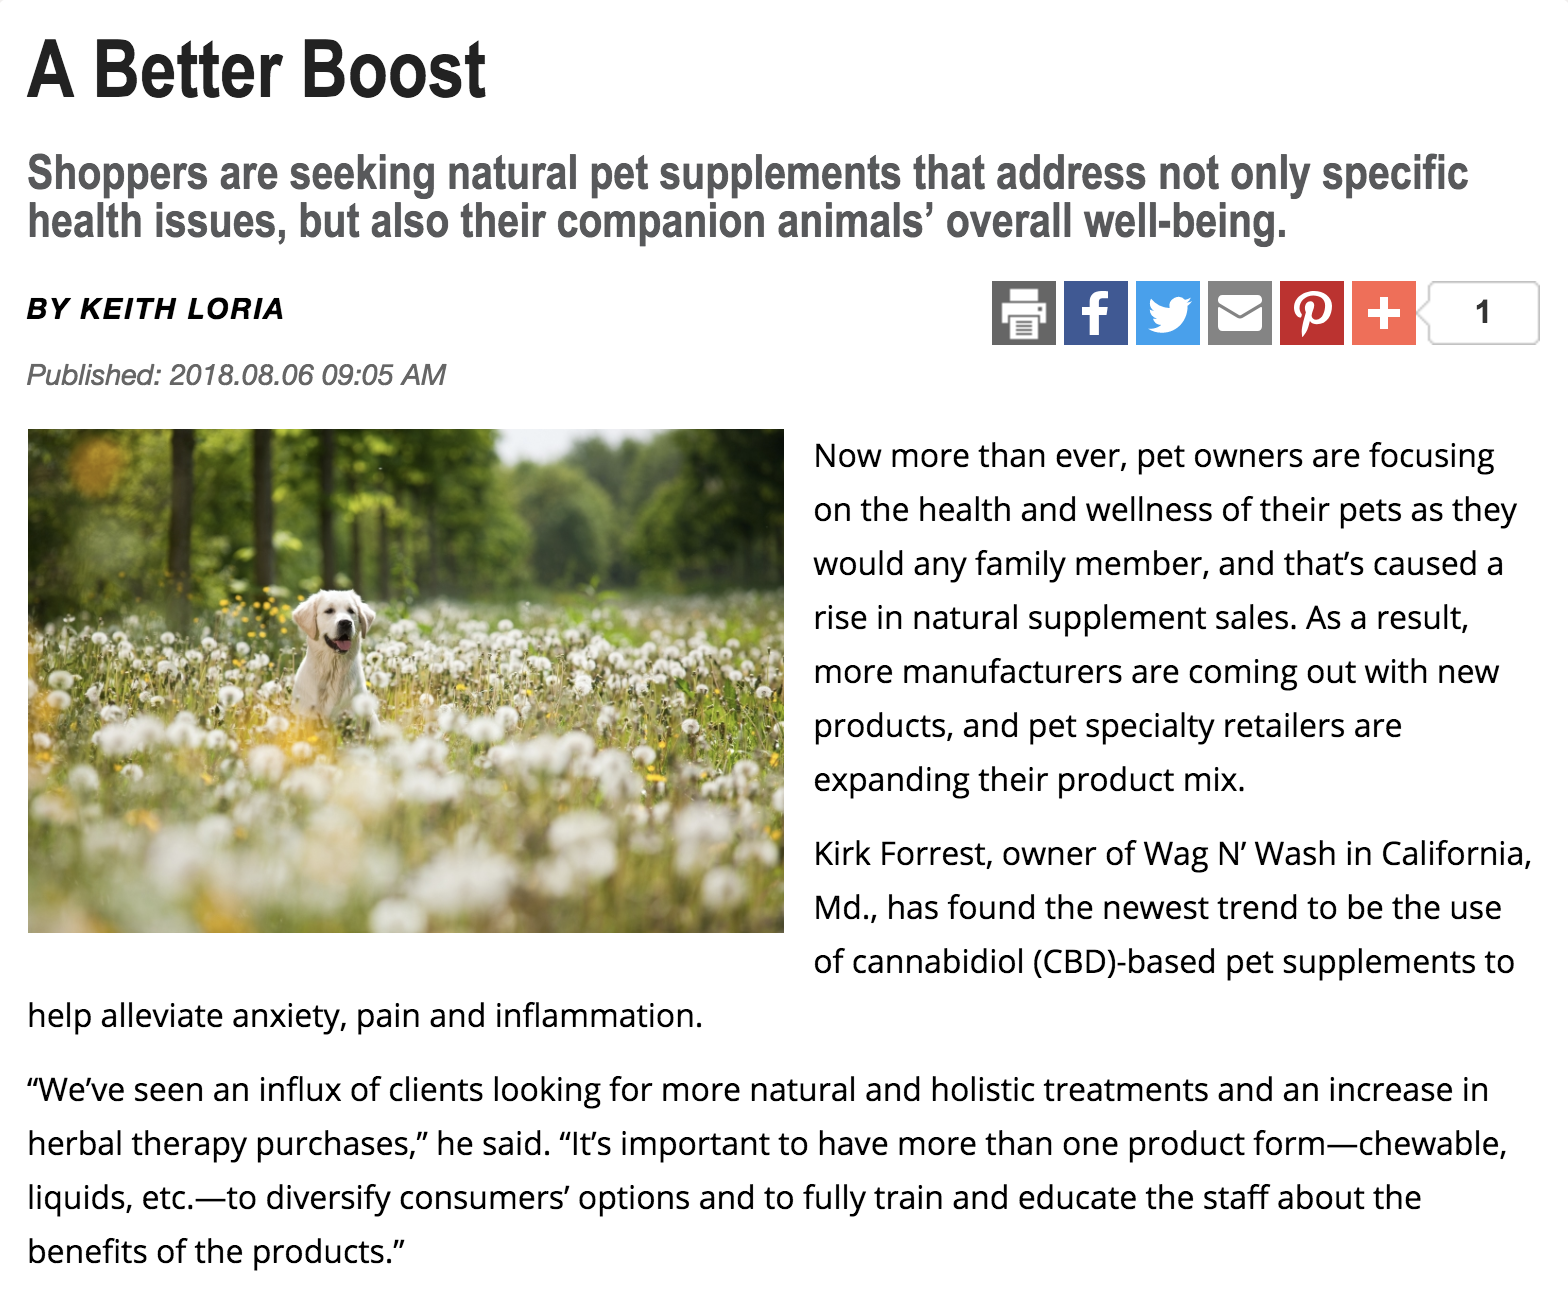 Pet Product News Quotes California, MD Local Owner on Supplements Trends